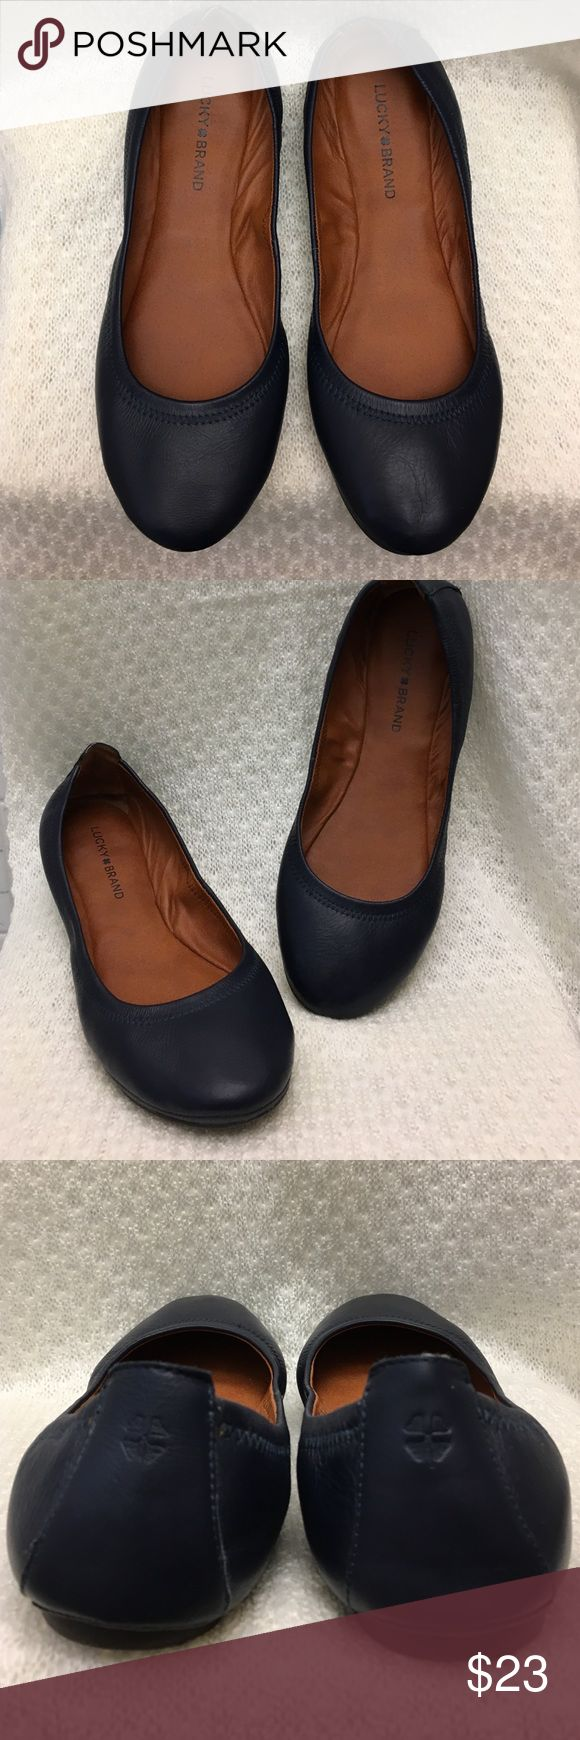 """Lucky Brand """"Emmie"""" Flats Pre-Owned gently used. Fabric: soft, Flexible material, Leather. Round toe. size: 10 Lucky Brand Shoes Flats & Loafers"""